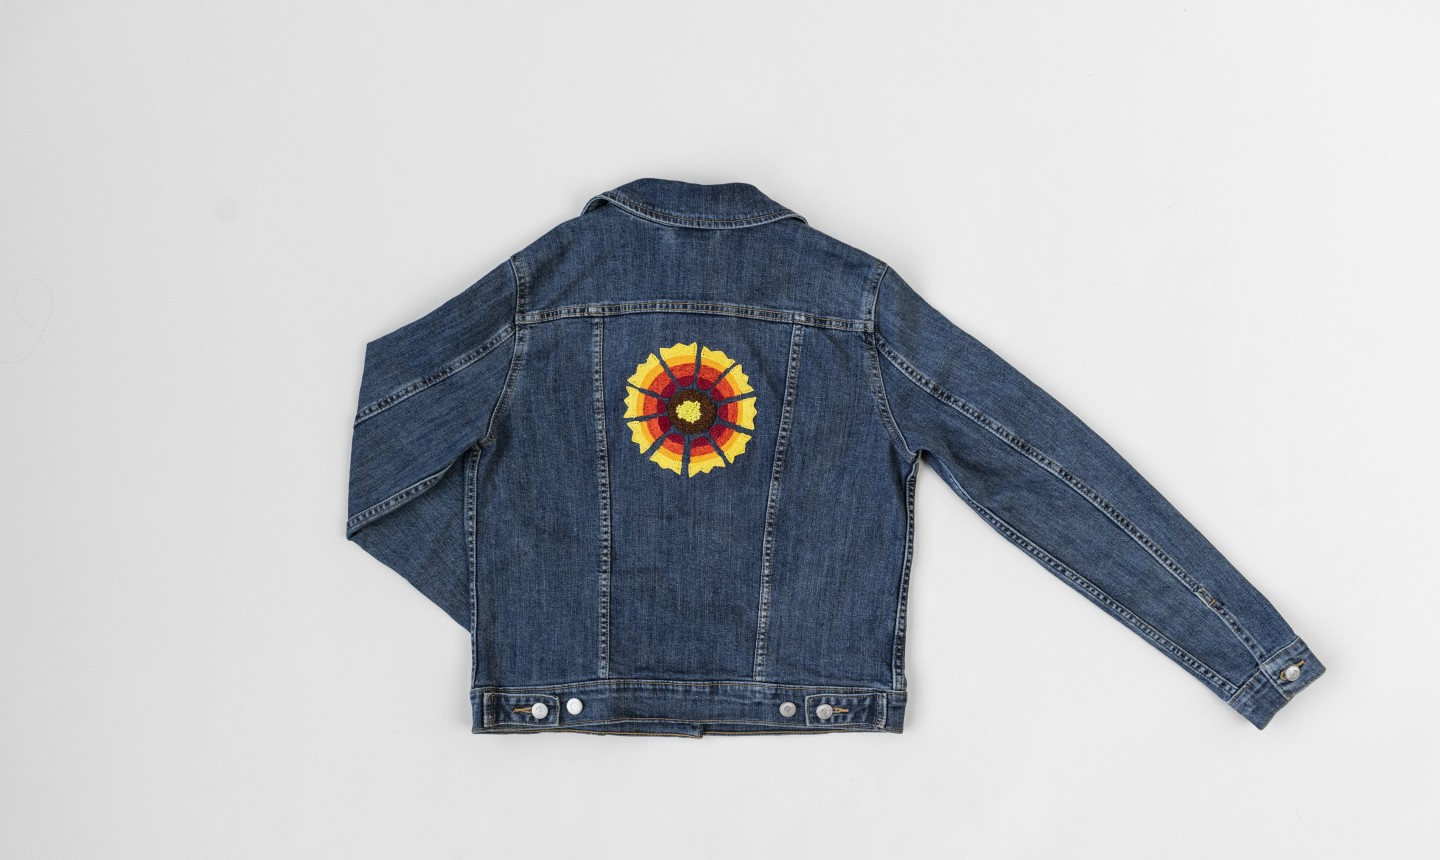 jean jacket with embroidered back